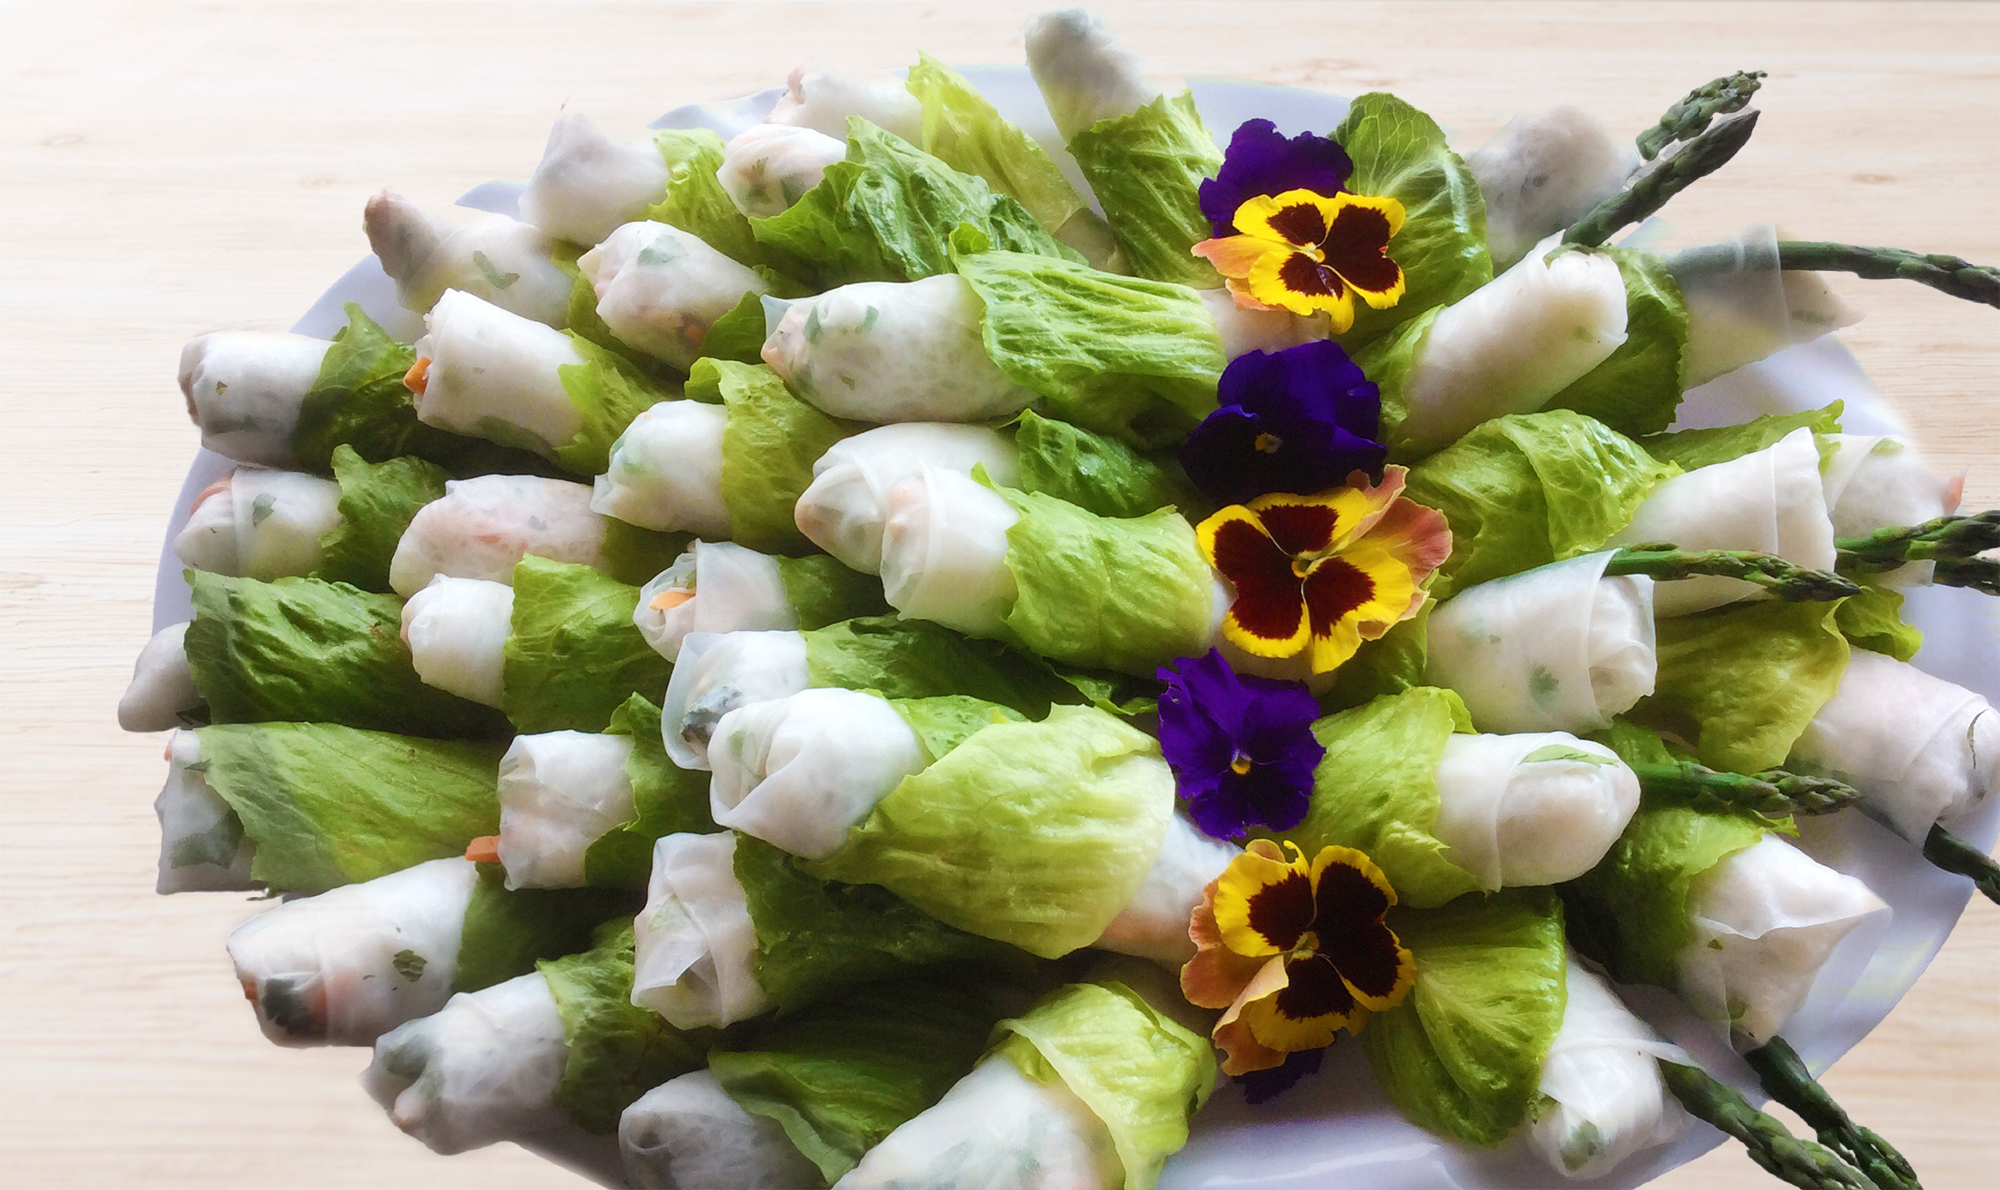 Traditional Arts Fair Workshop – Duang's Wrap and Roll Photo